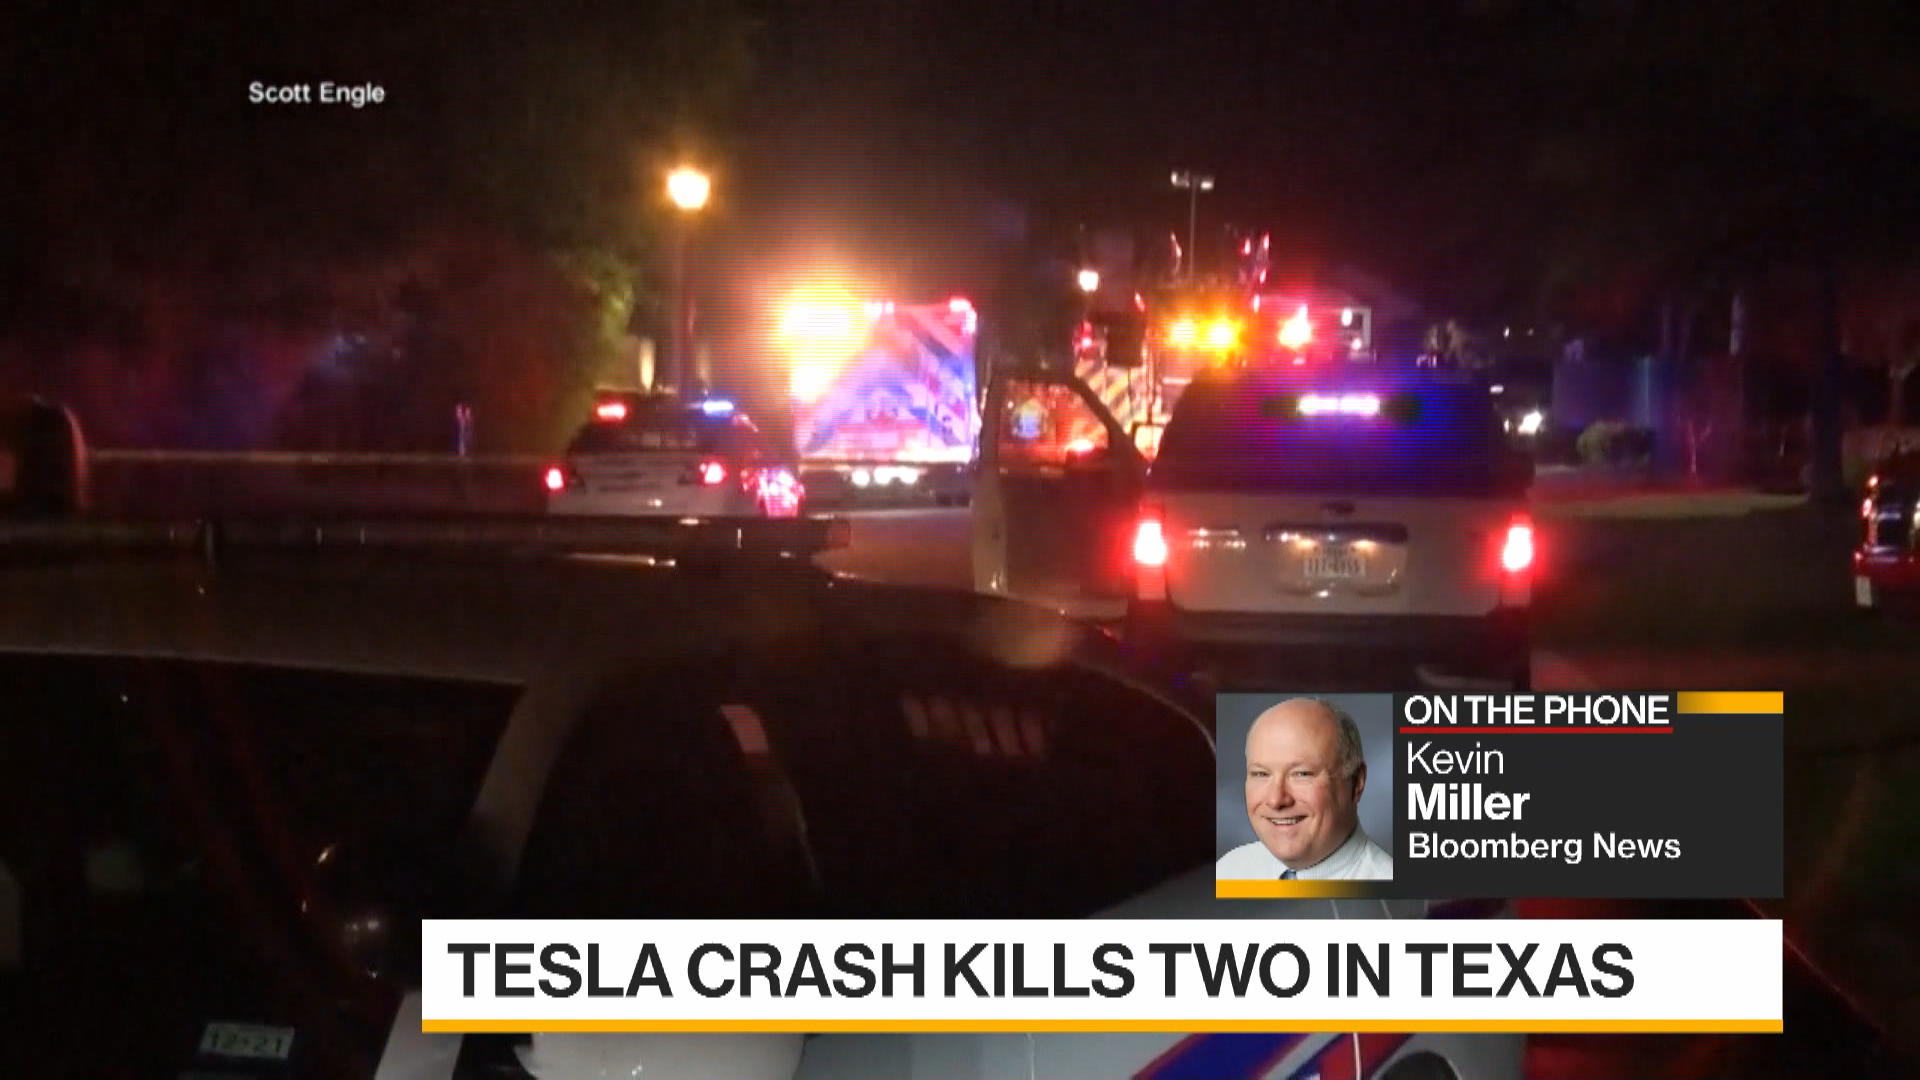 Tesla With 'No One' Driving Crashes, Killing Two